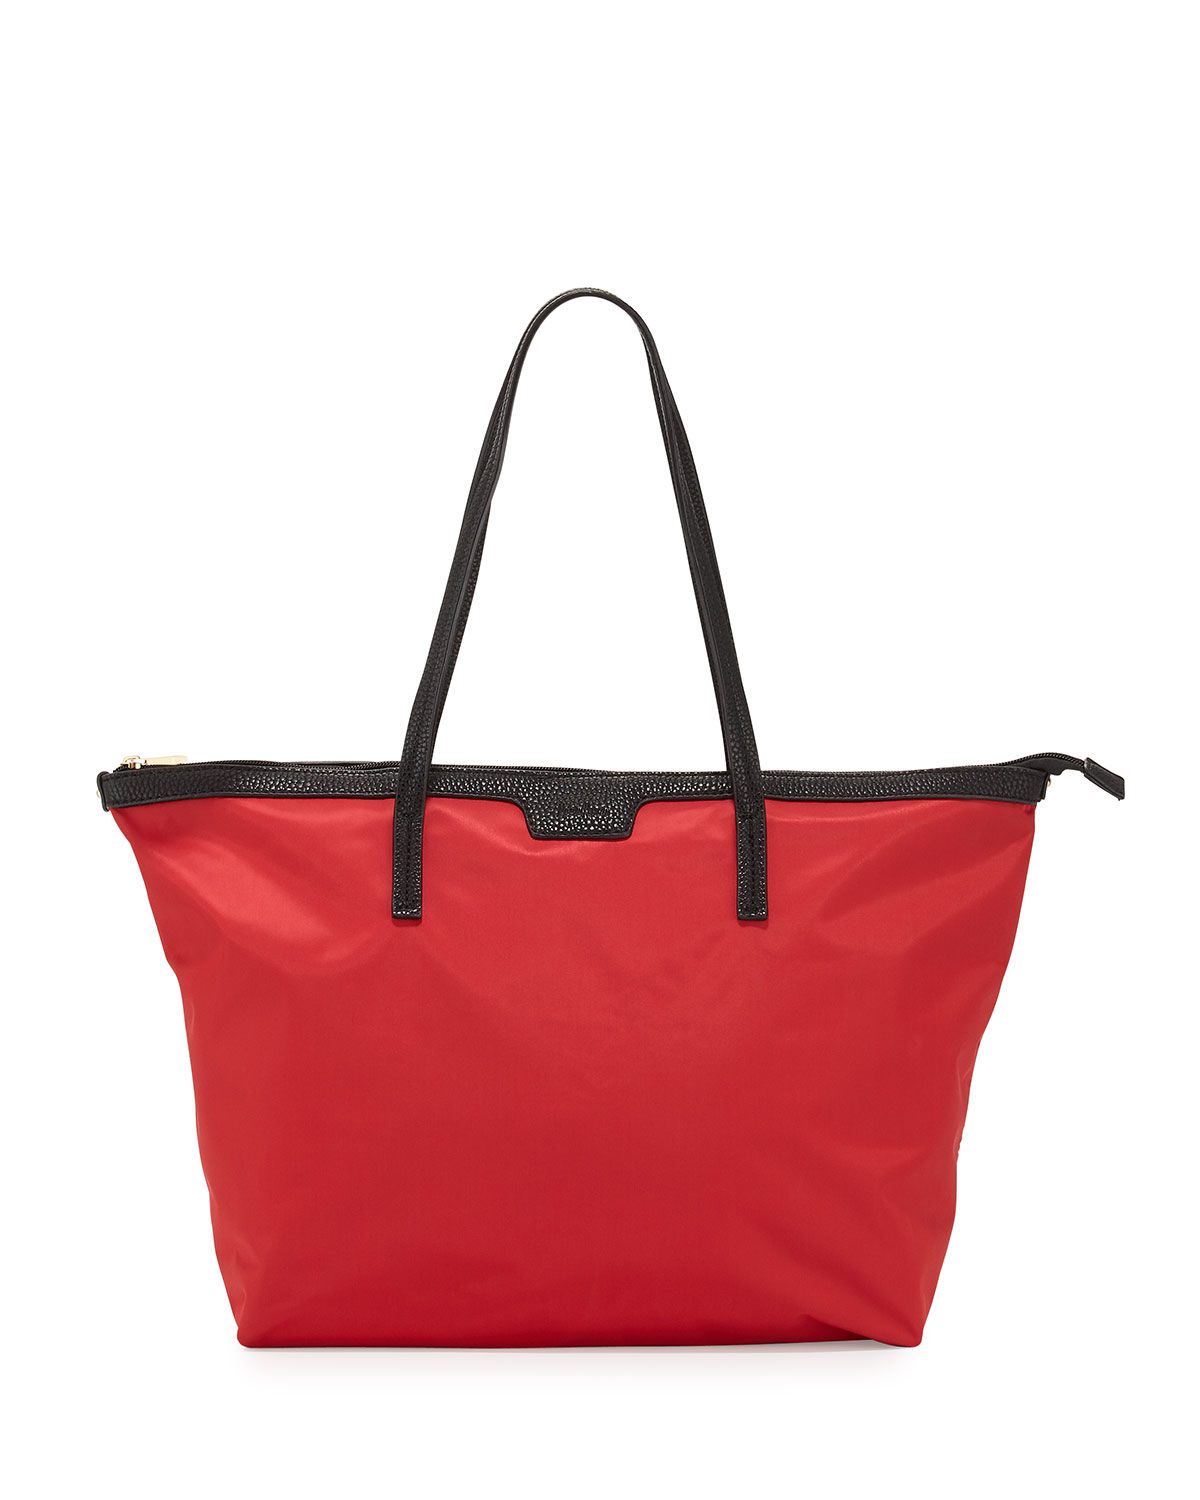 Neiman marcus Miley Nylon Zip-top Tote Bag in Red | Lyst